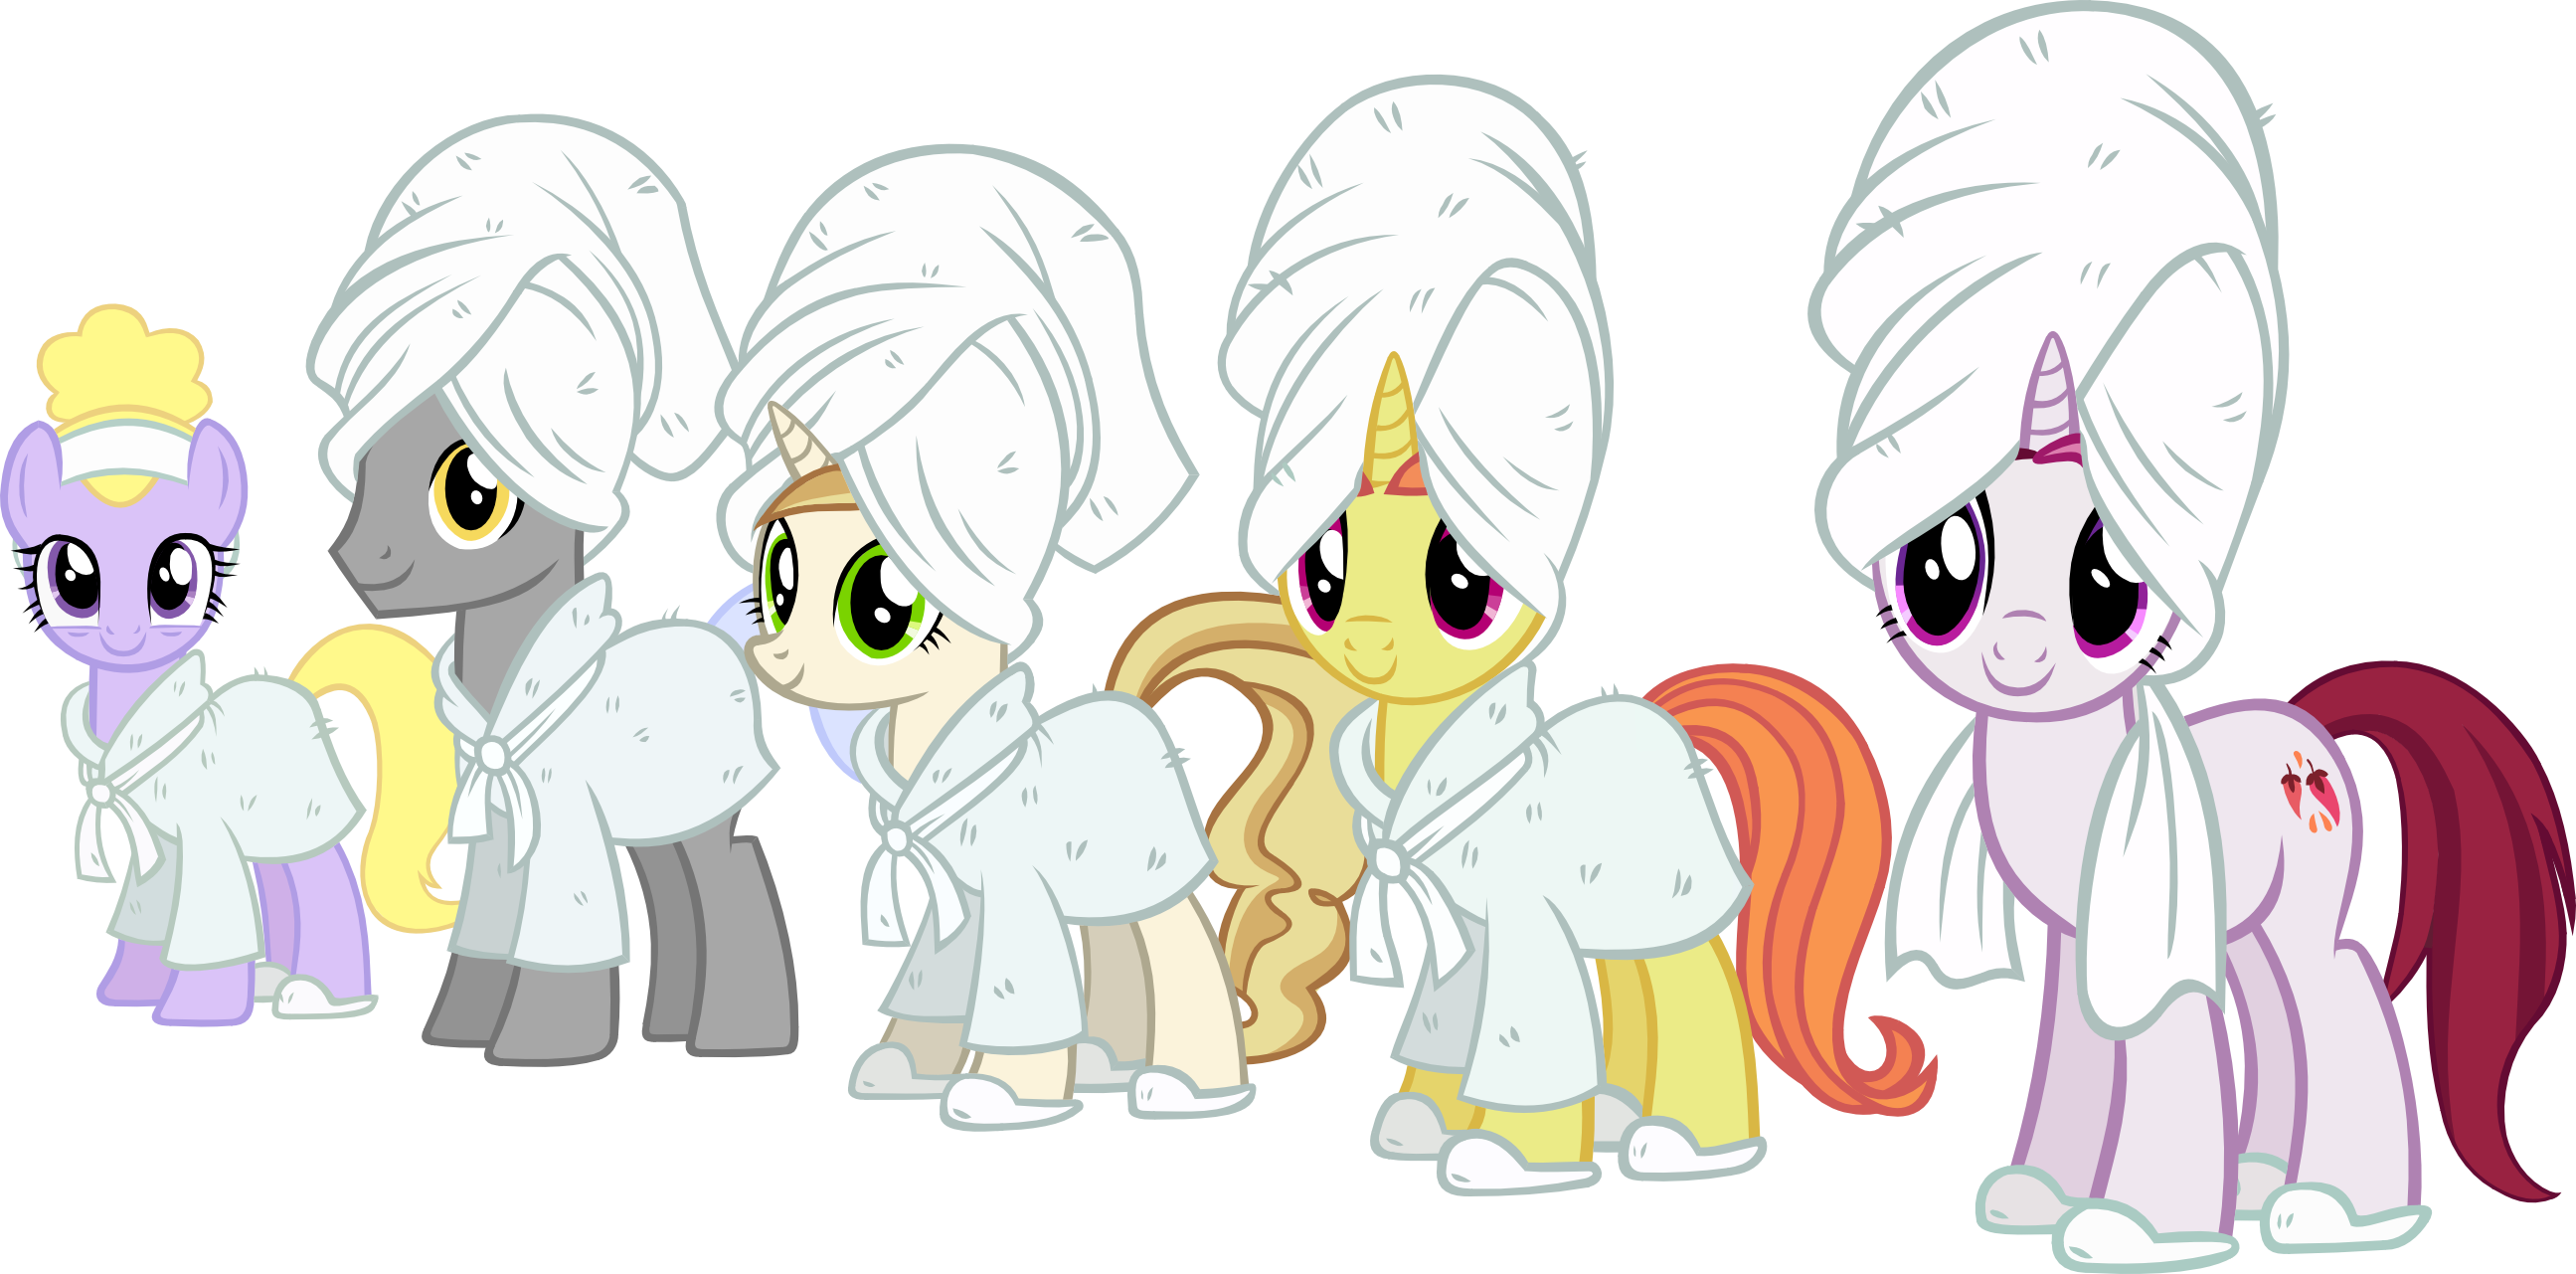 canterlot_spa_ponies_by_ironm17-dajrc2p.